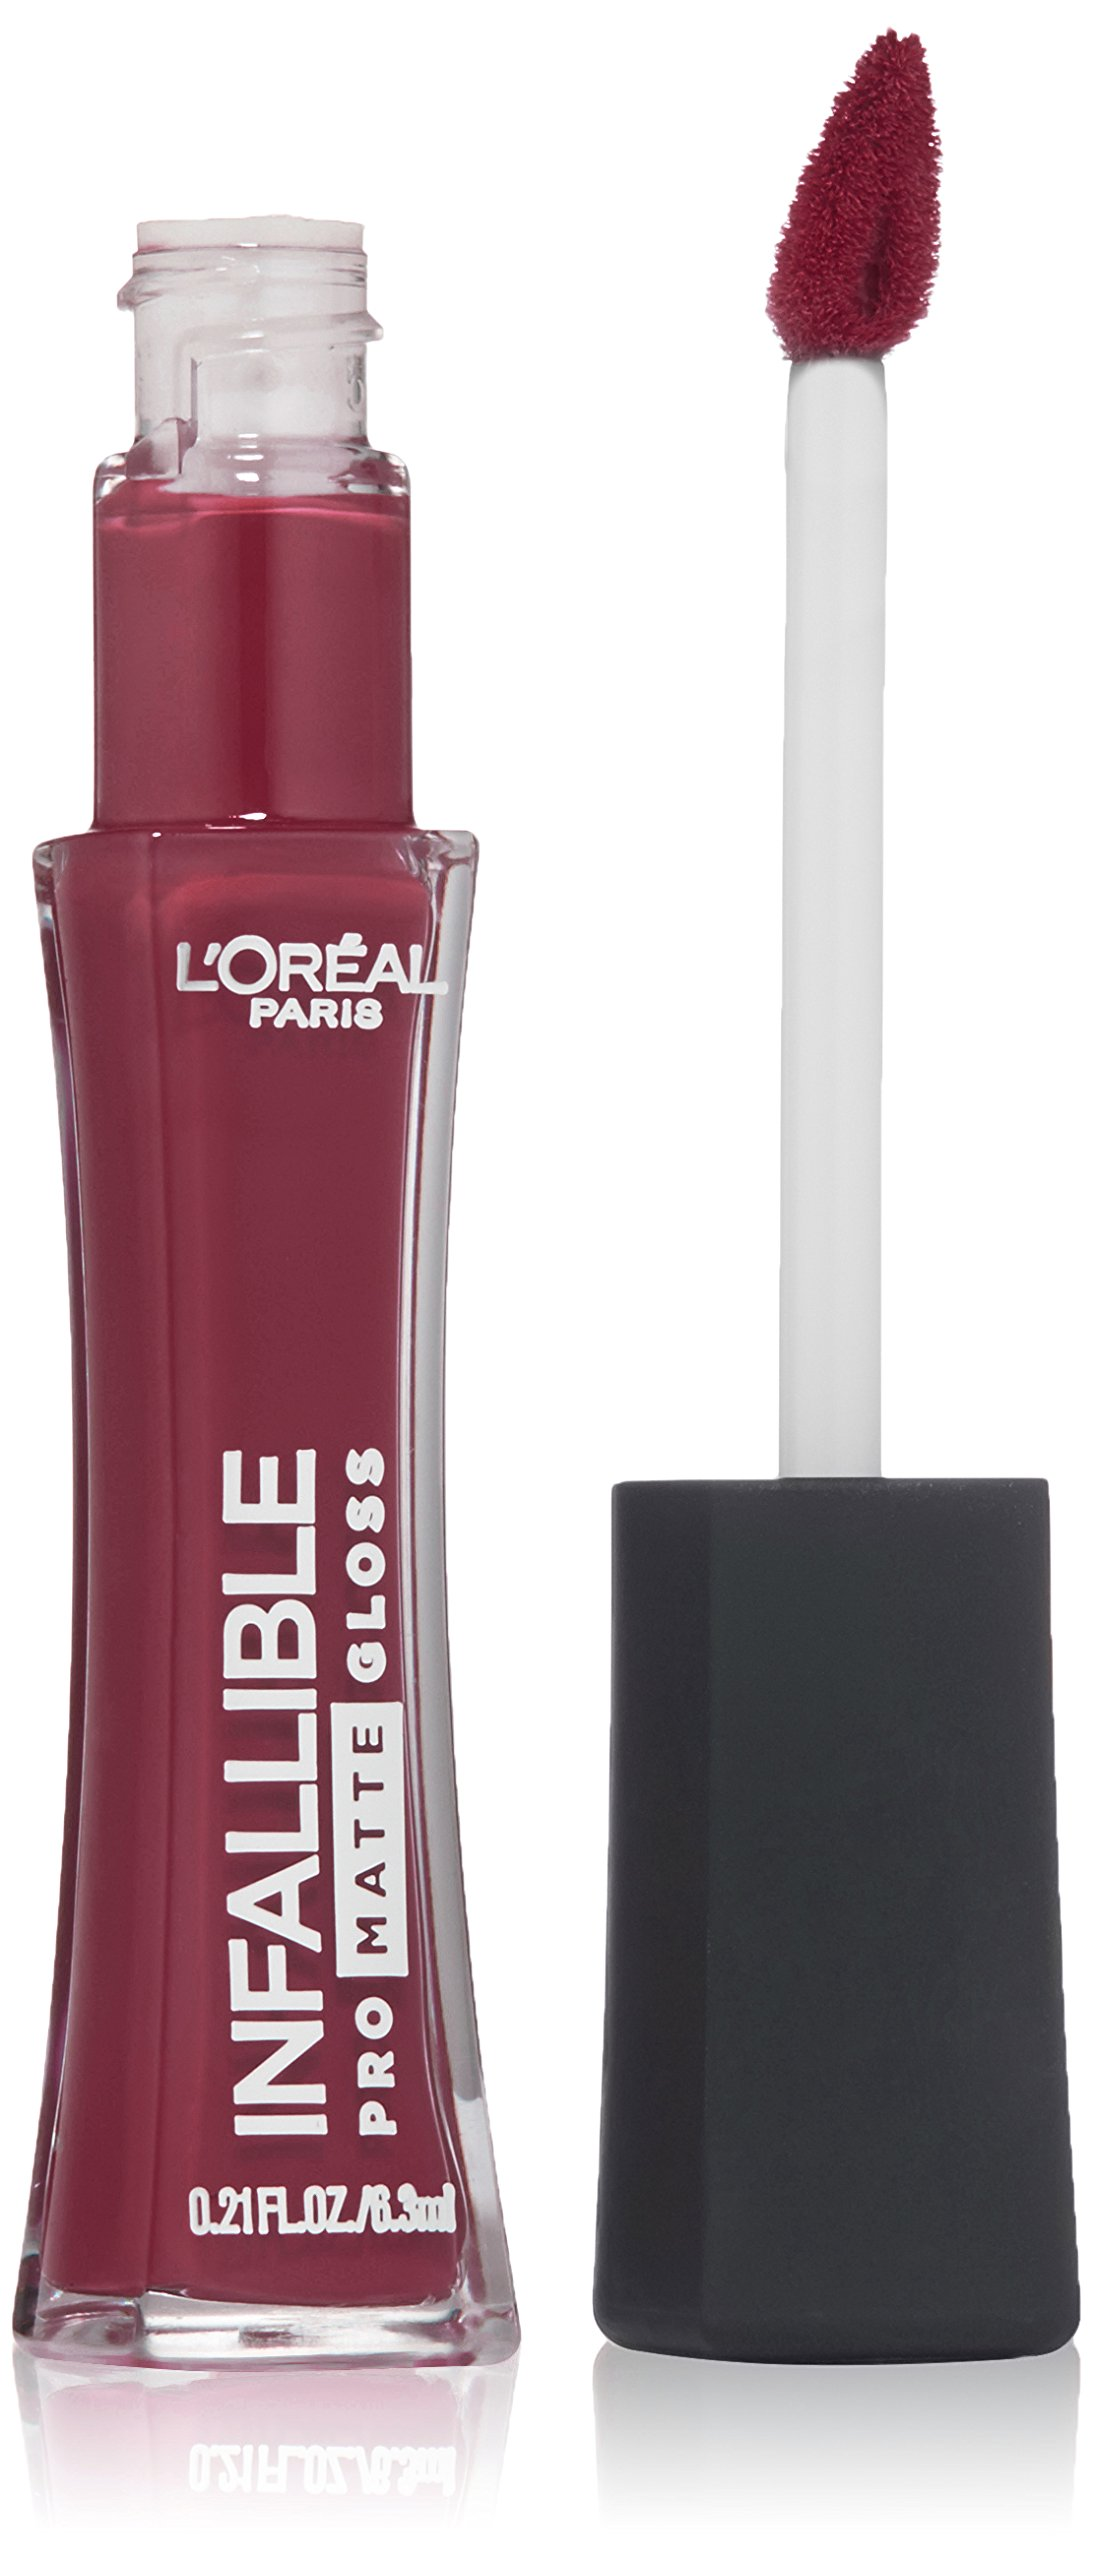 L'Oréal Paris Infallible Lip Pro Matte Gloss, Forbidden Kiss, 0.21 fl. oz.